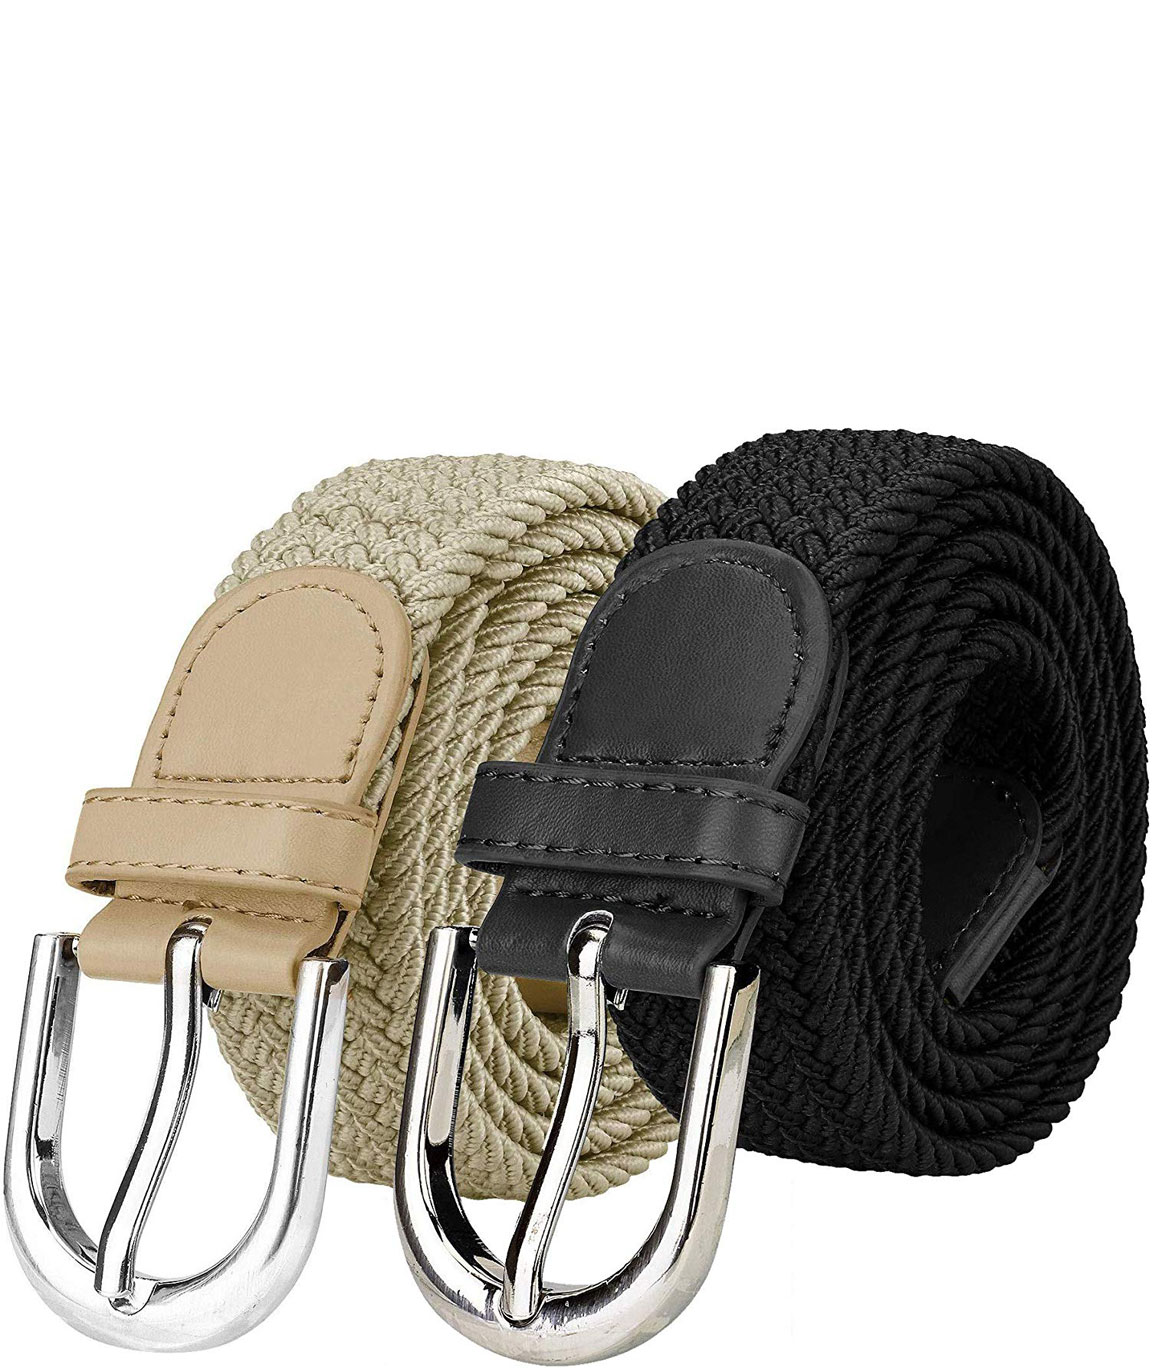 ZORO Stretchable braided cotton belt for women, ladies belt, grey, Blue, brown and green color Combo of 2 pcs